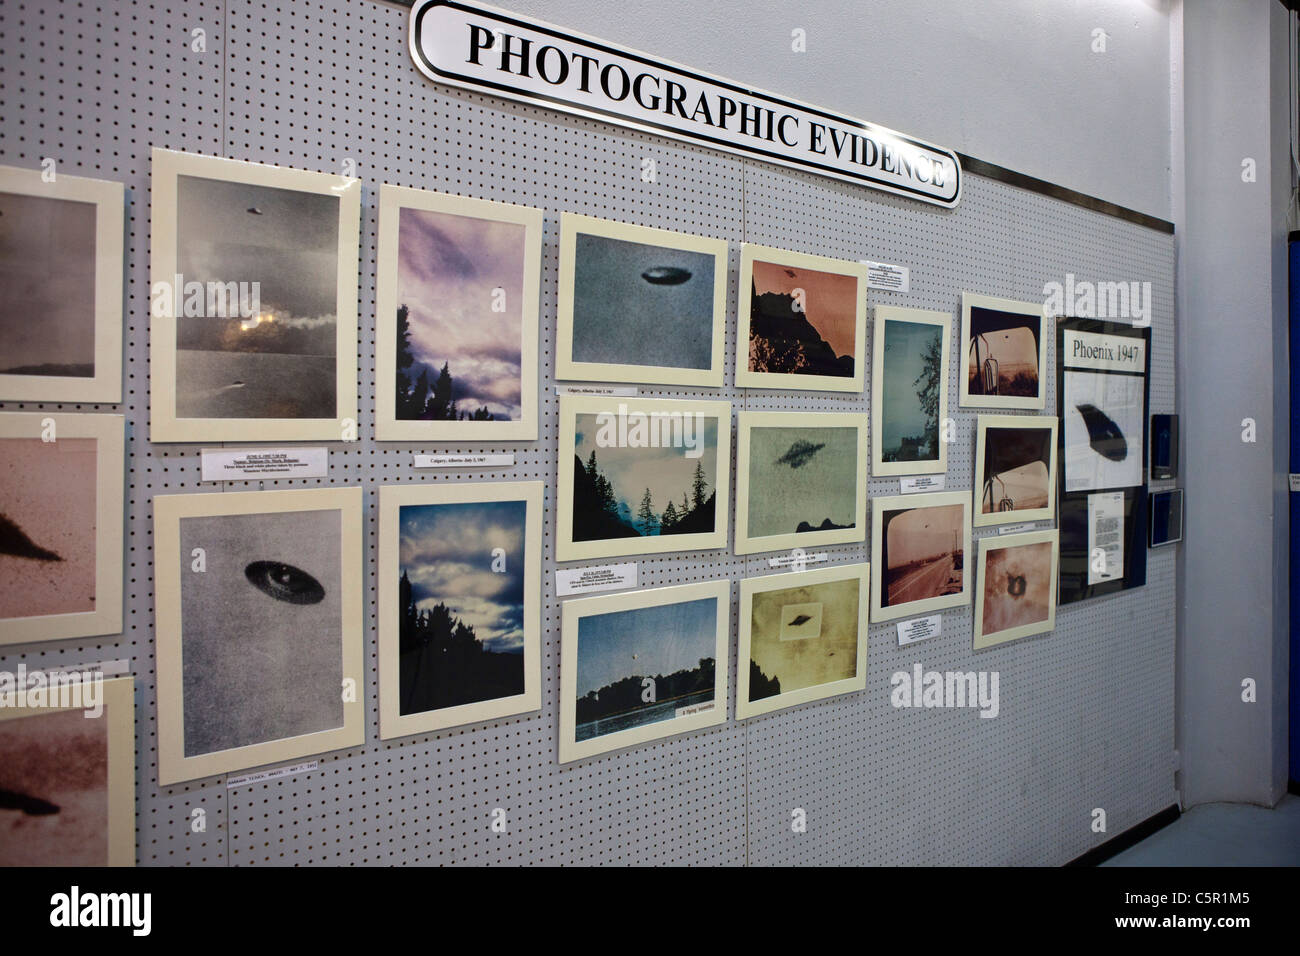 Photographic evidence display of UFOs, International UFO Museum and Research Center, Roswell, New Mexico, USA. - Stock Image